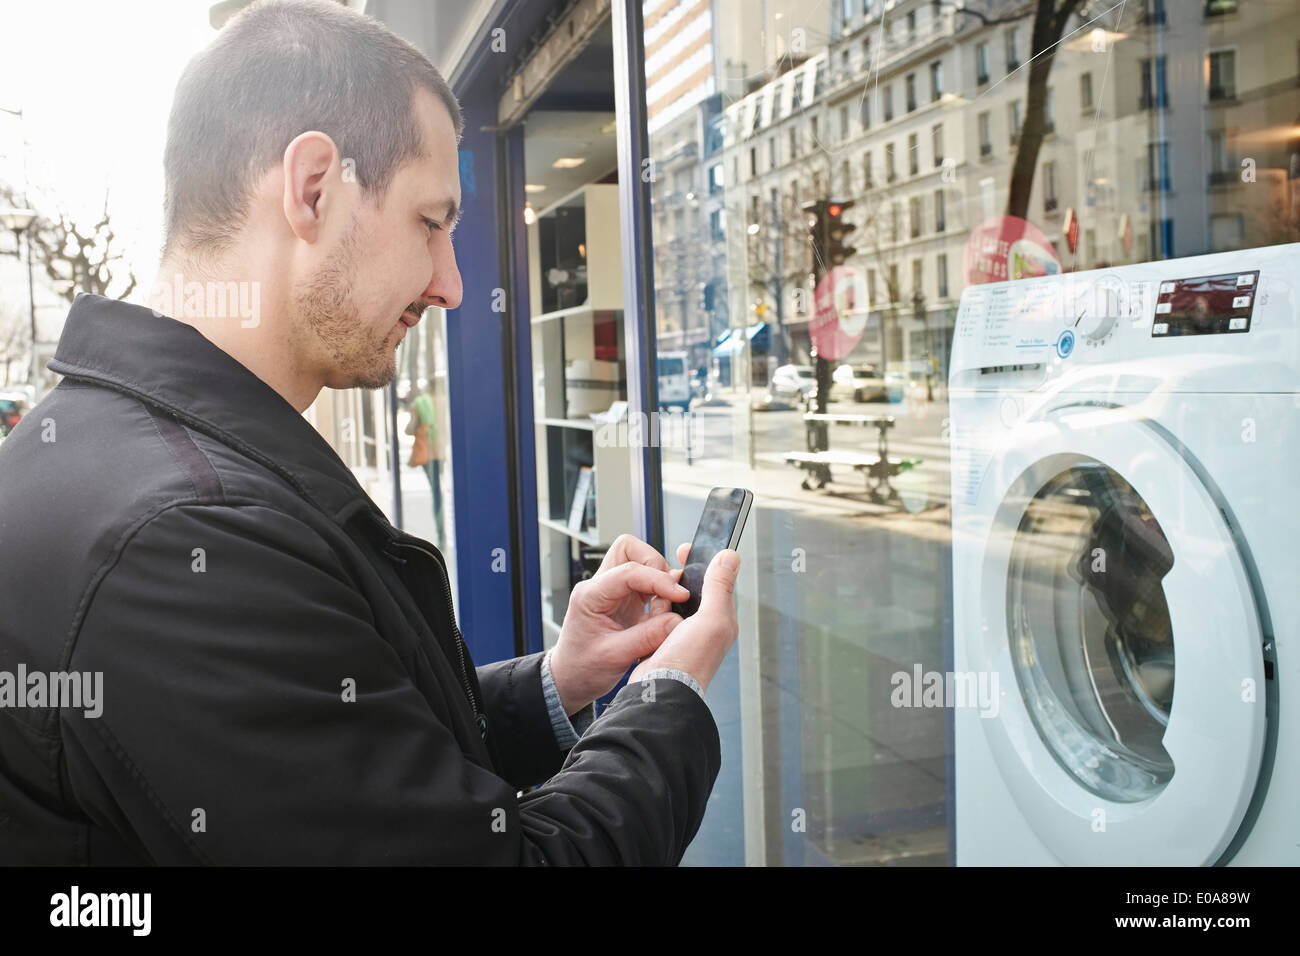 Mid adult man checking out washing machine in shop using smartphone - Stock Image